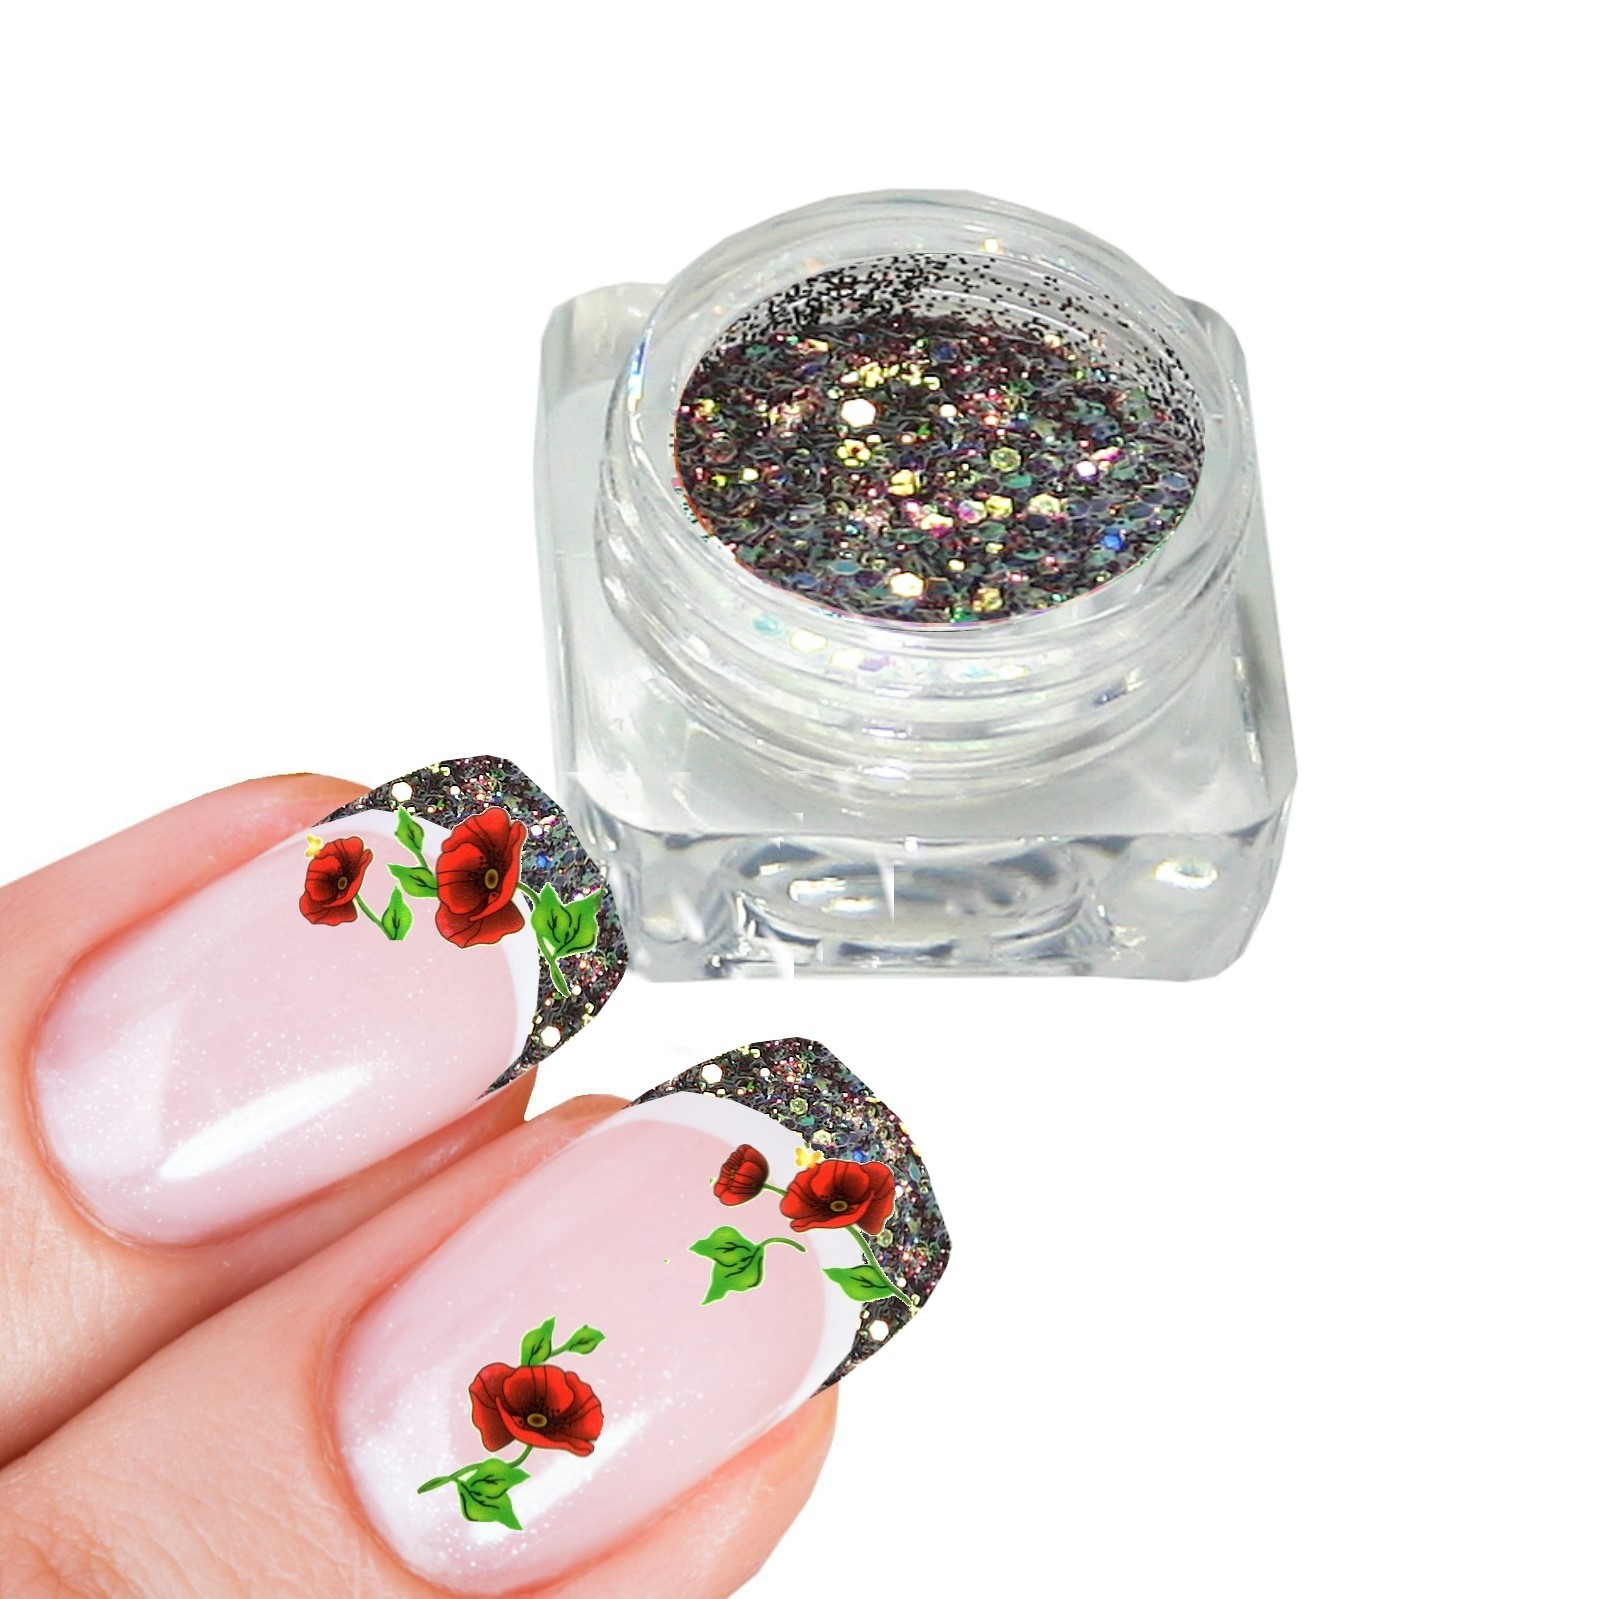 Pai42_Pailletten__Glitter_Puder_Mix_Anja_Beck_www.Magical-Nails.de